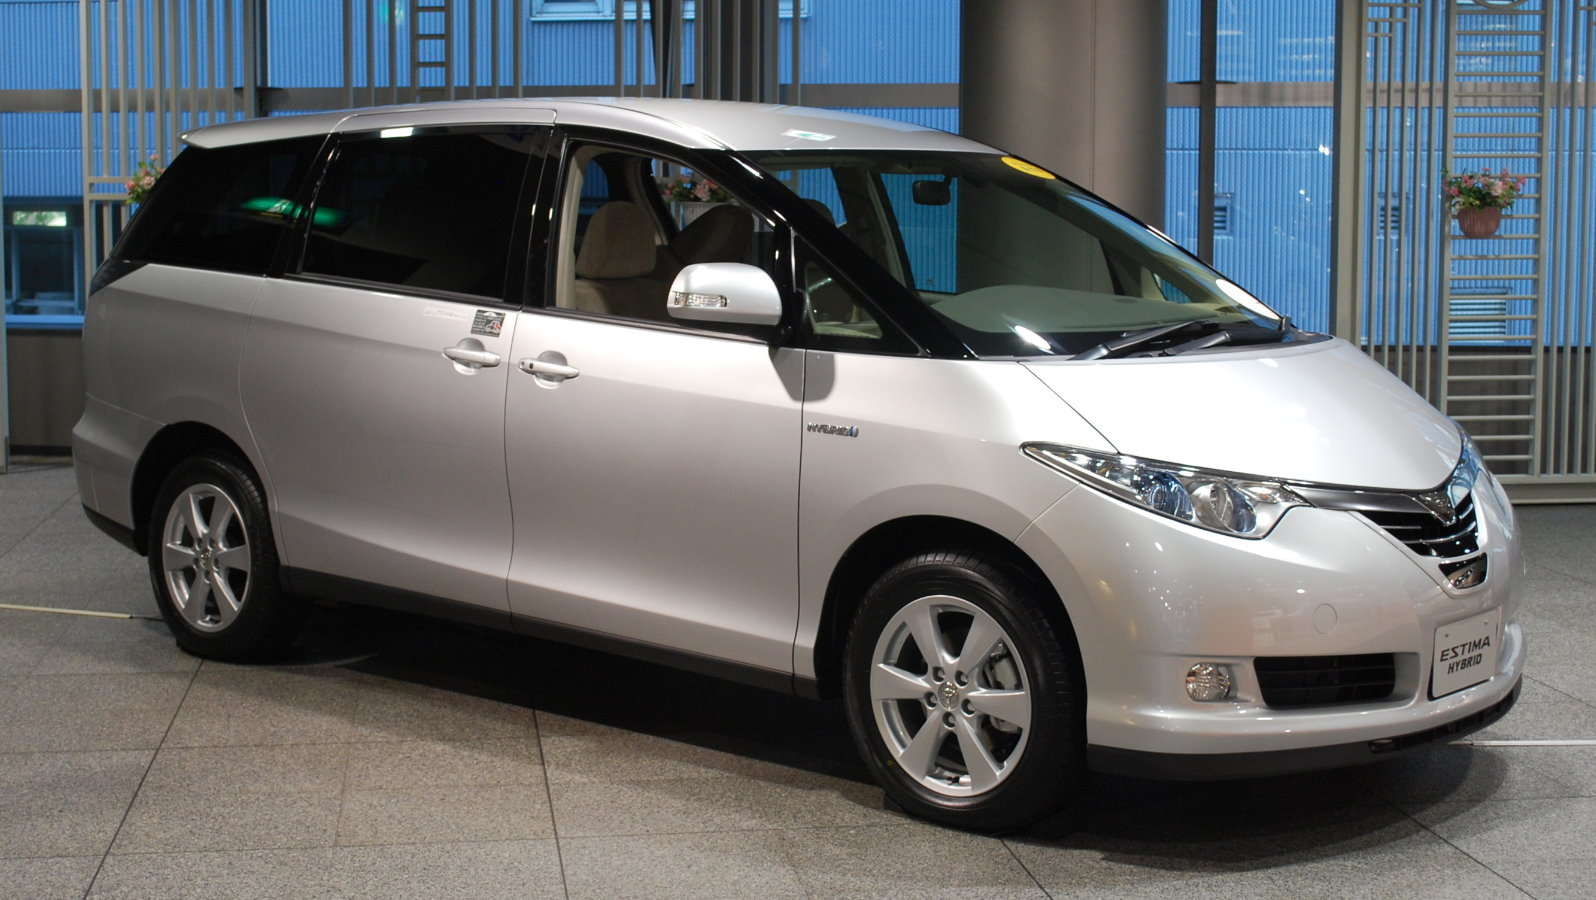 Toyota Estima Hybrid Wallpaper Download